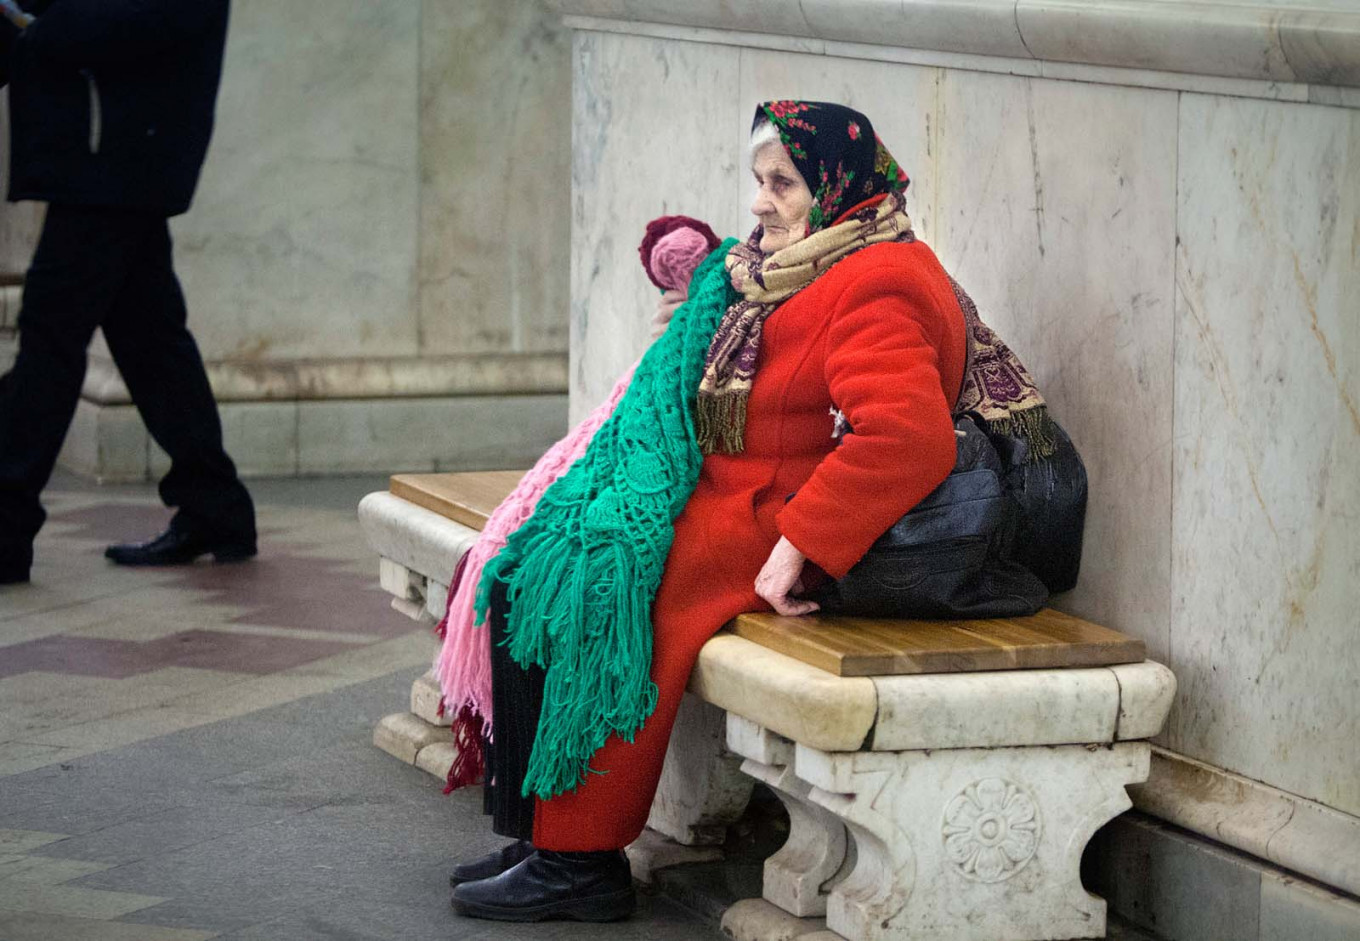 At Kievskaya metro station, a woman selling knitted scarves.				 				Vladimir Filonov / MT